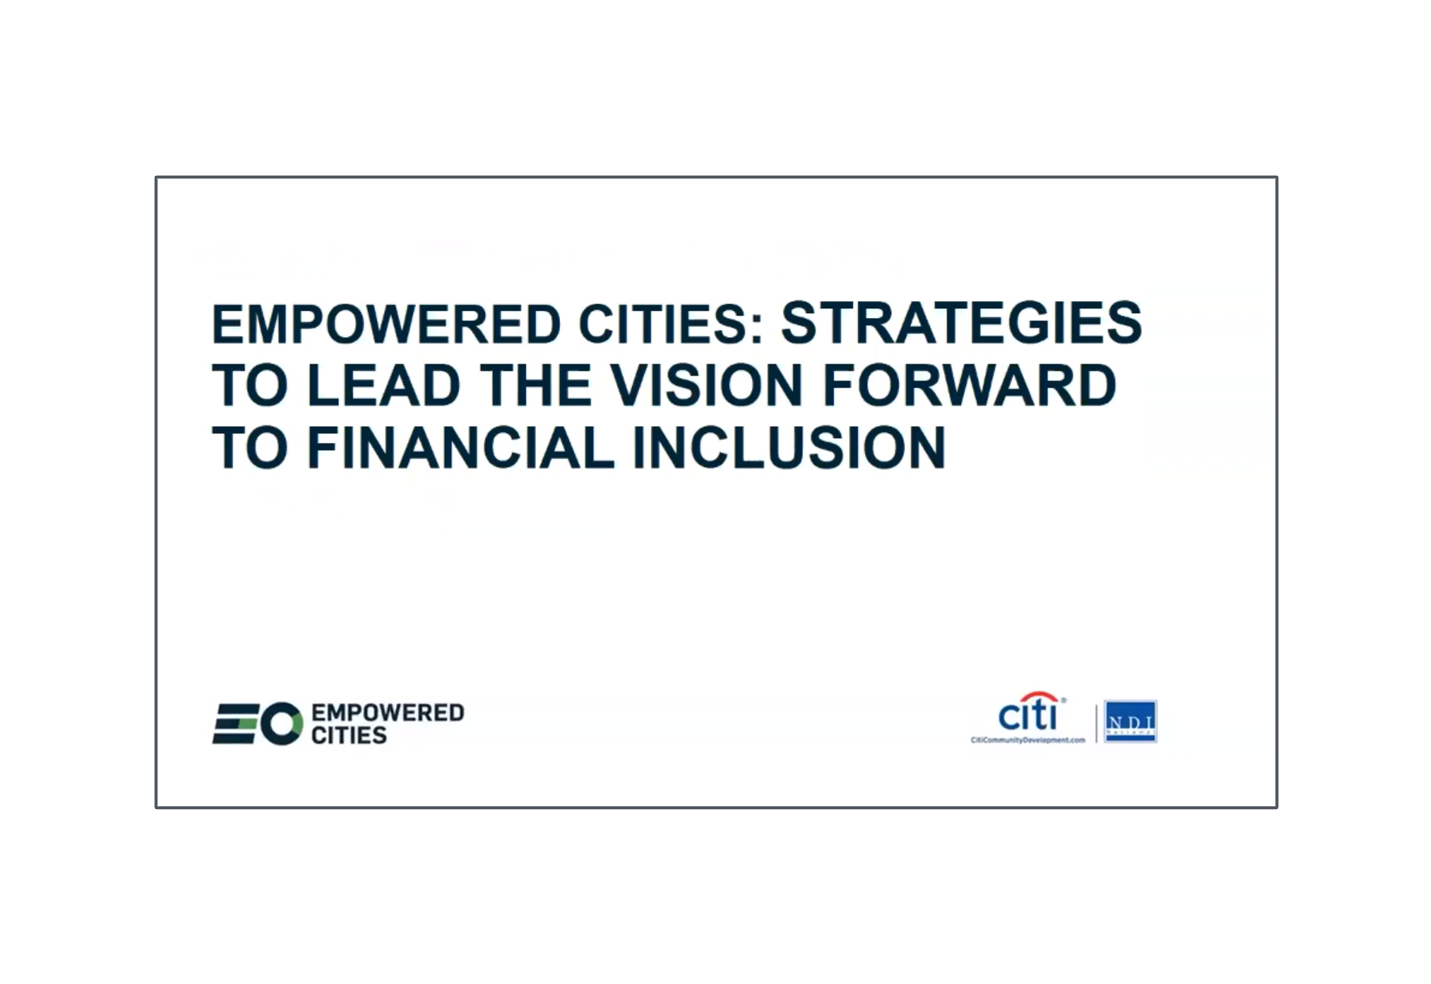 Strategies to Lead the Vision Forward to Financial Inclusion